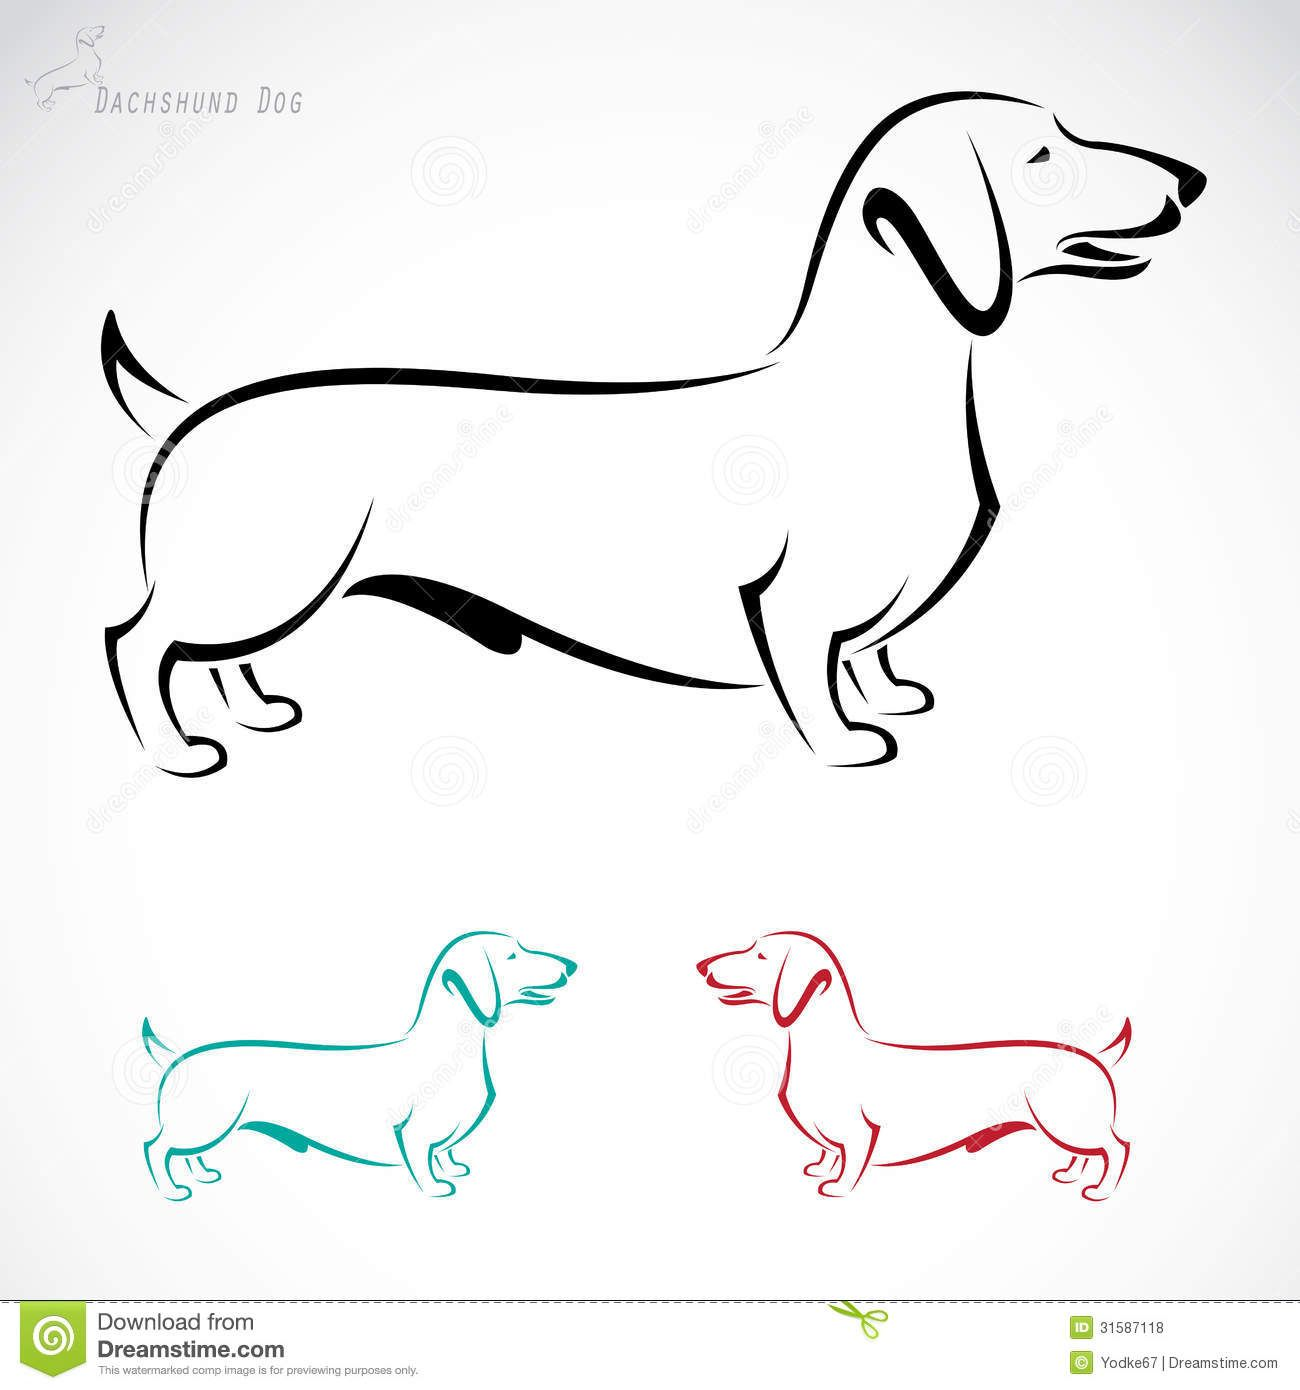 Dachshund Drawings Silhouettes